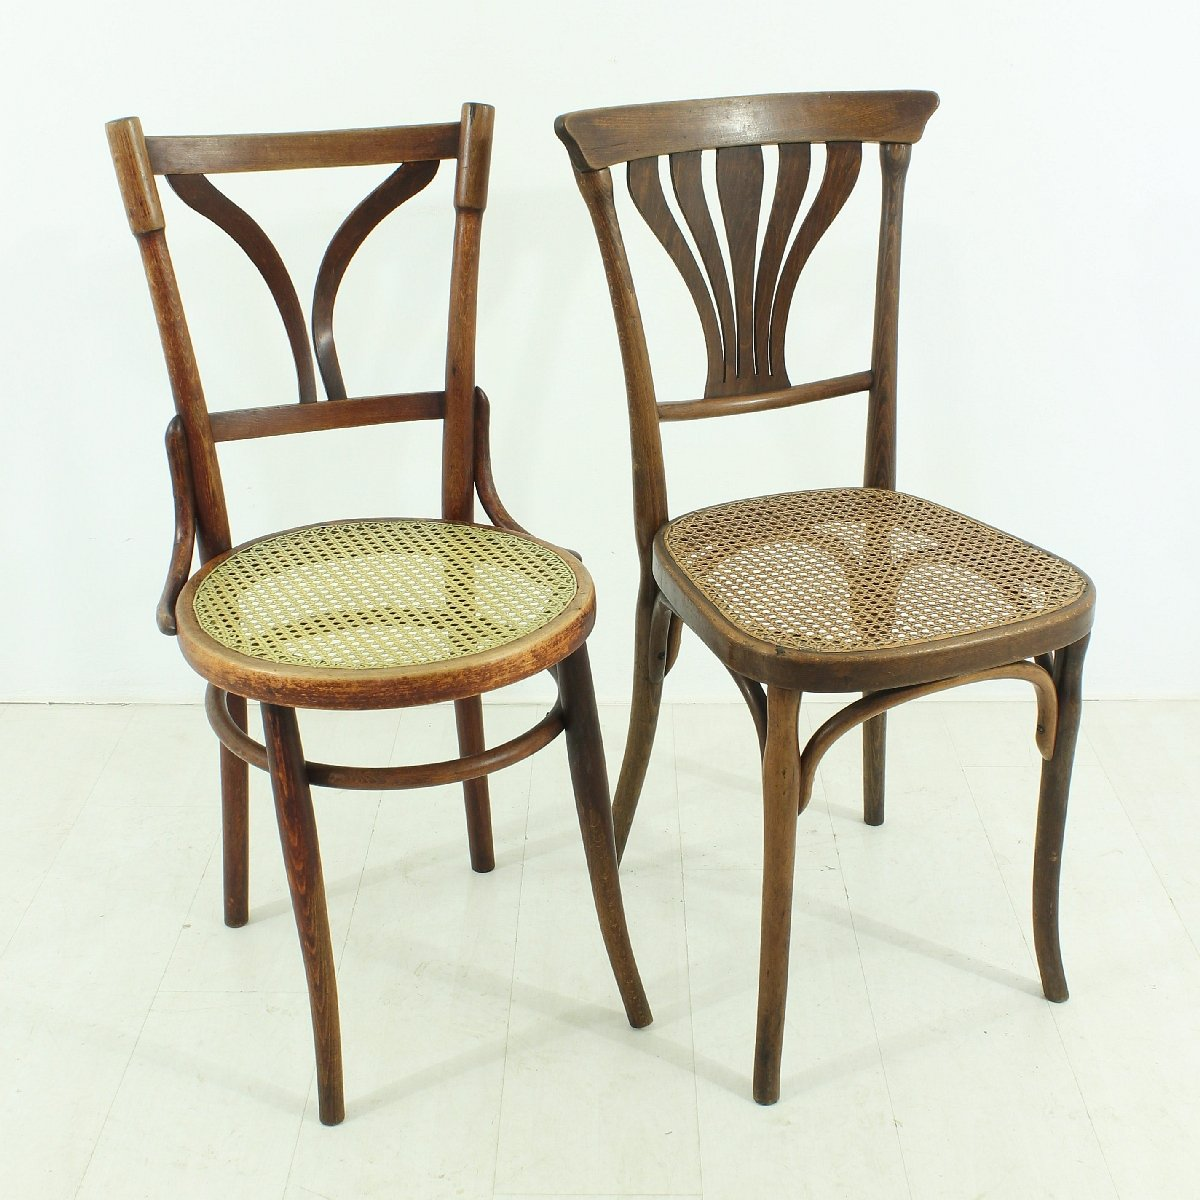 Bistro Chair Antique Bentwood Bistro Chairs Set Of 2 For Sale At Pamono